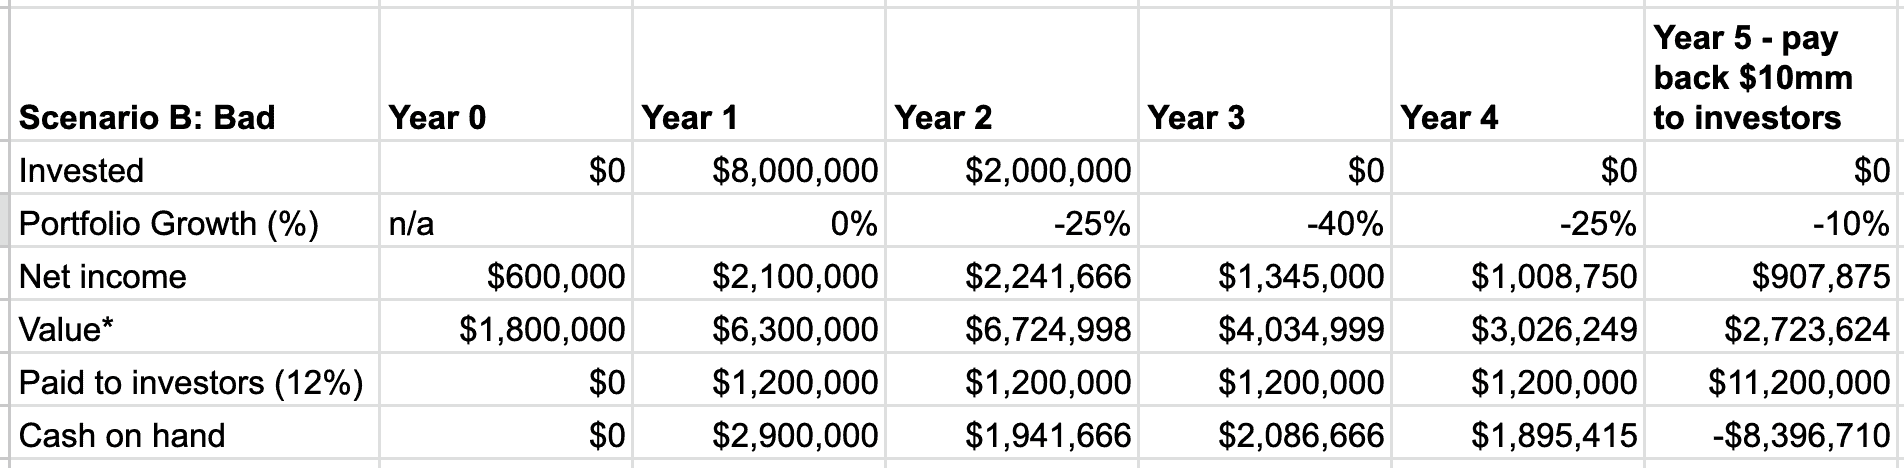 Table of 5 year preferred shares results - example bad scenario